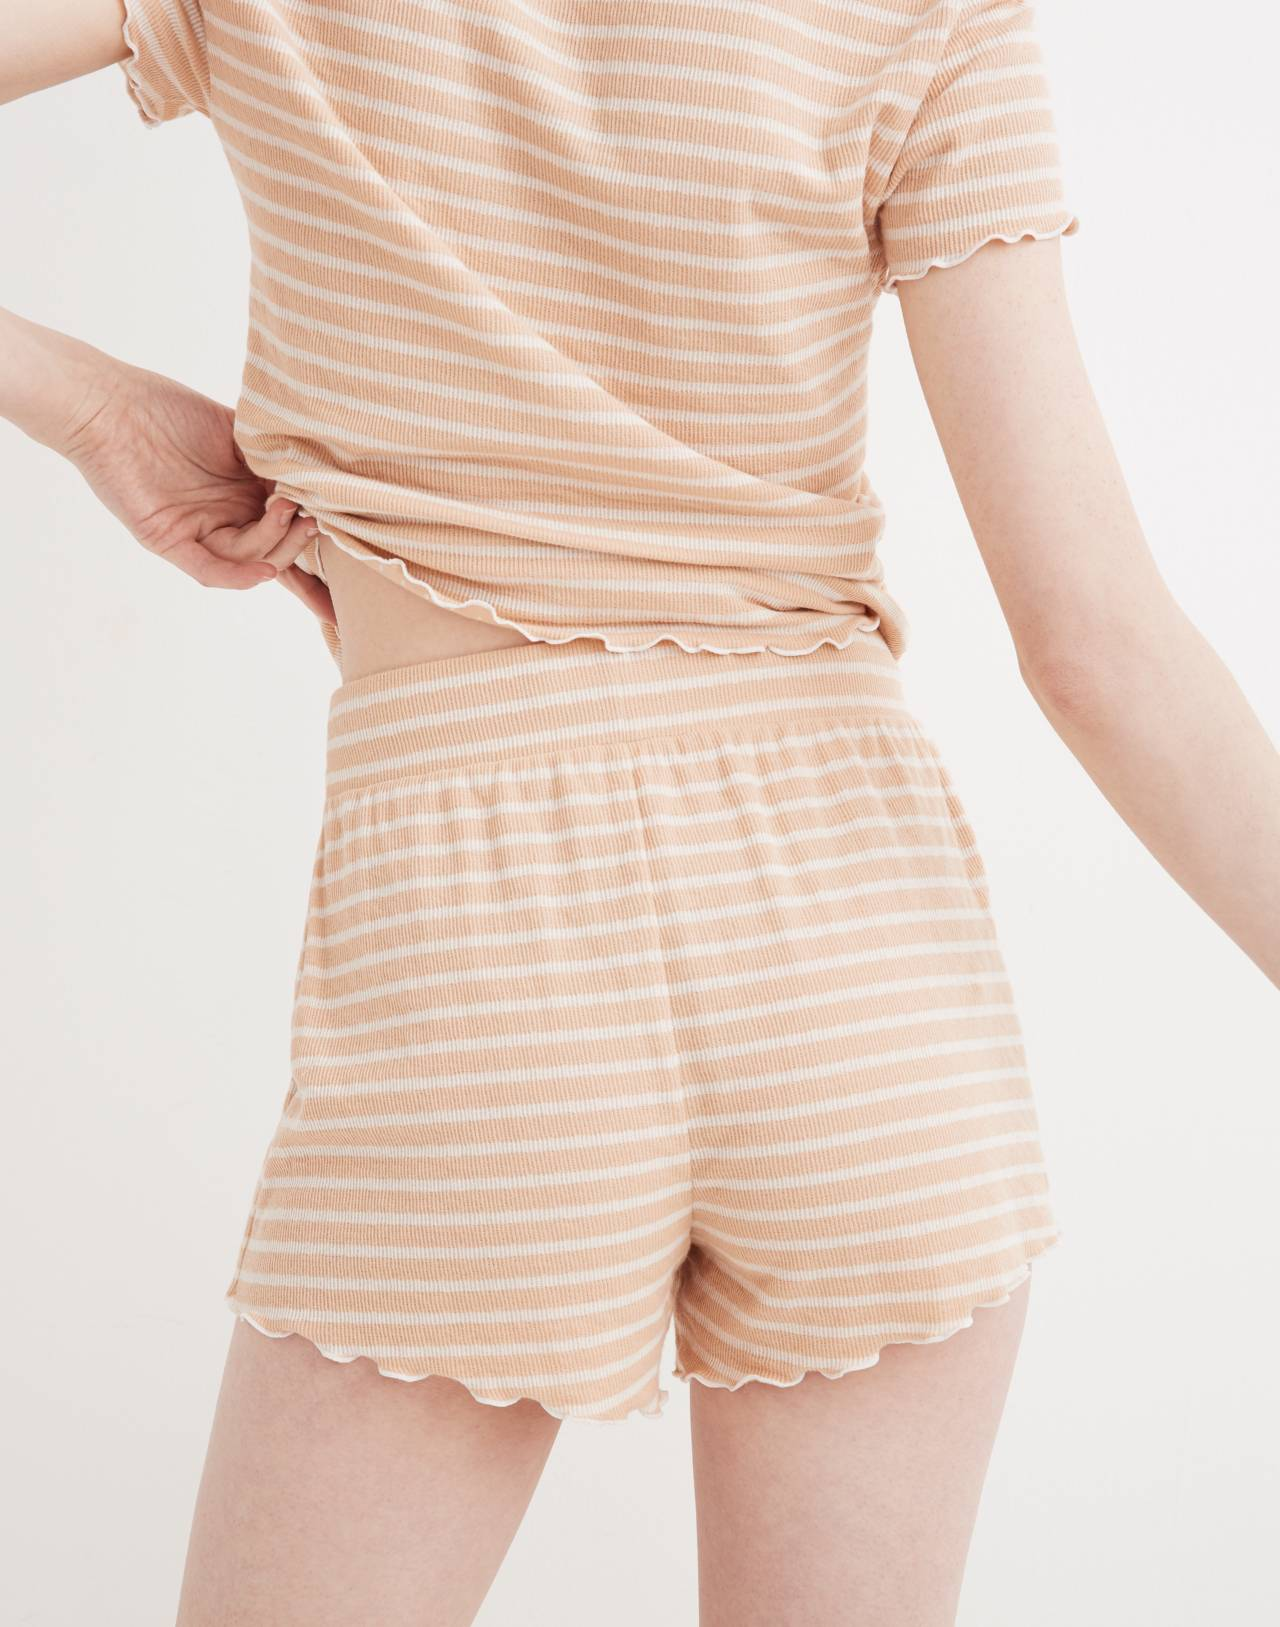 Ruffled Pajama Shorts in Stripe in voile pink image 2